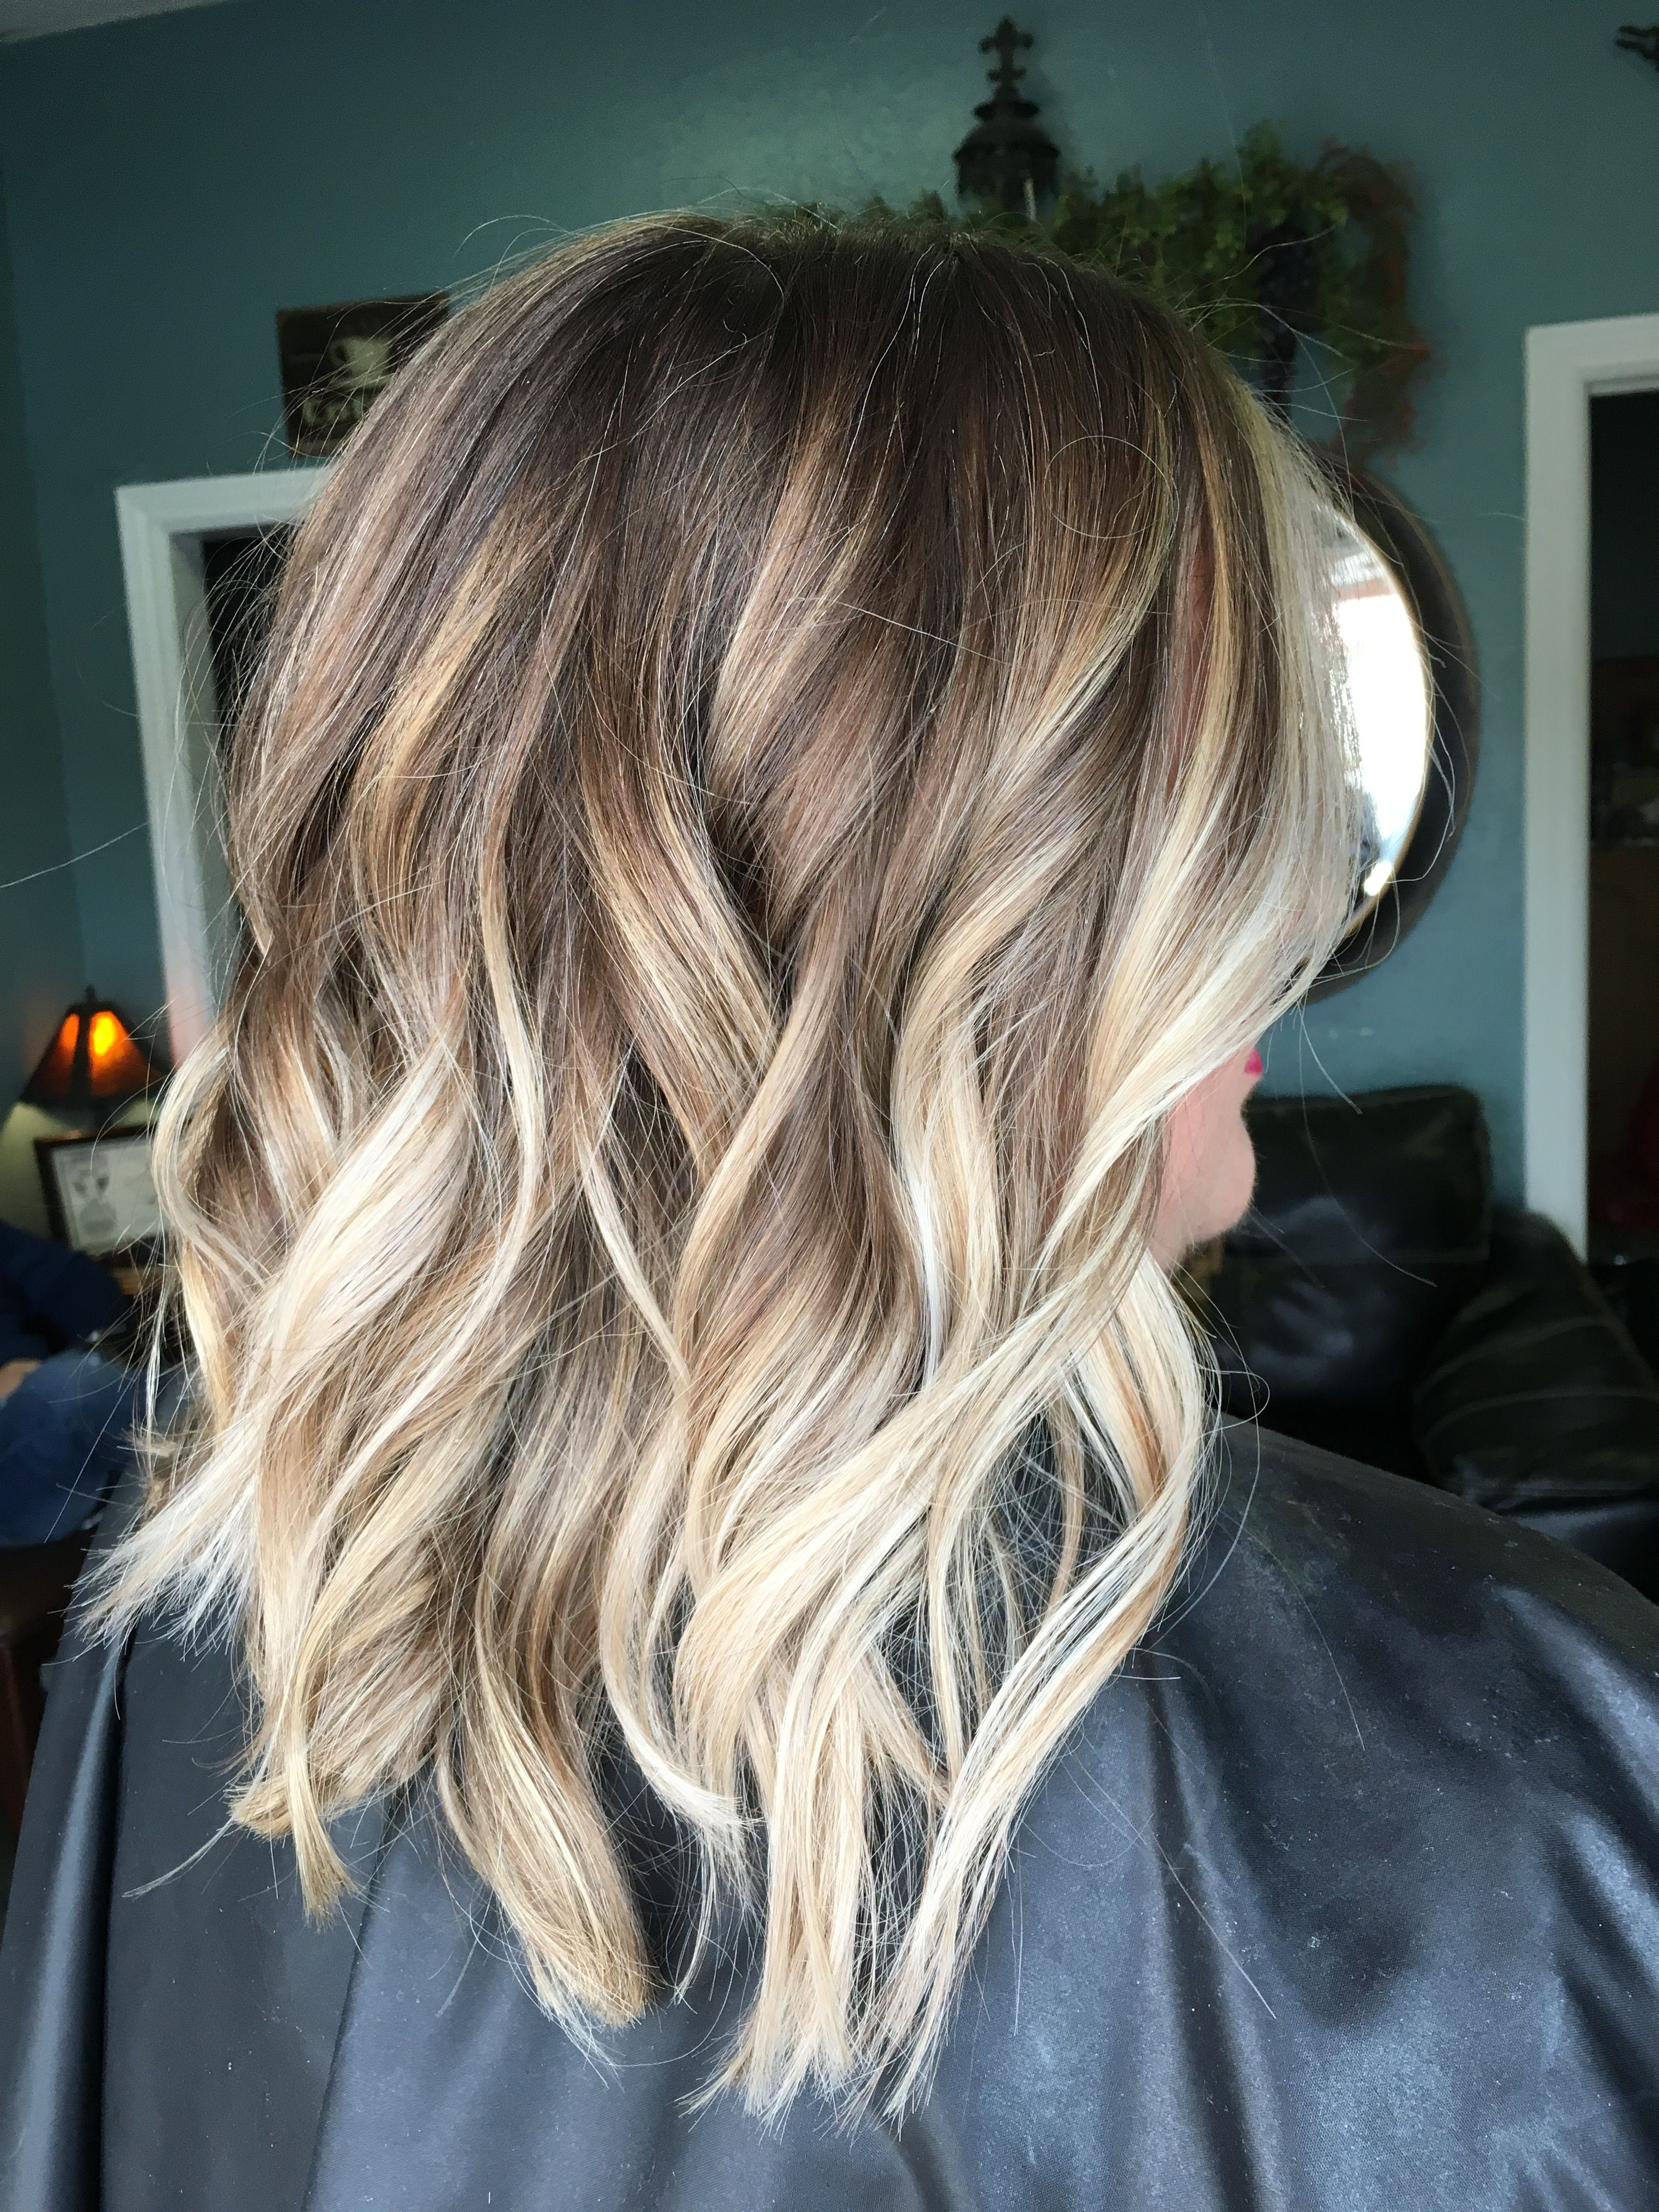 Bob Haircut Ombre With Images Blonde Hair With Highlights Cool Hair Color Balayage Hair